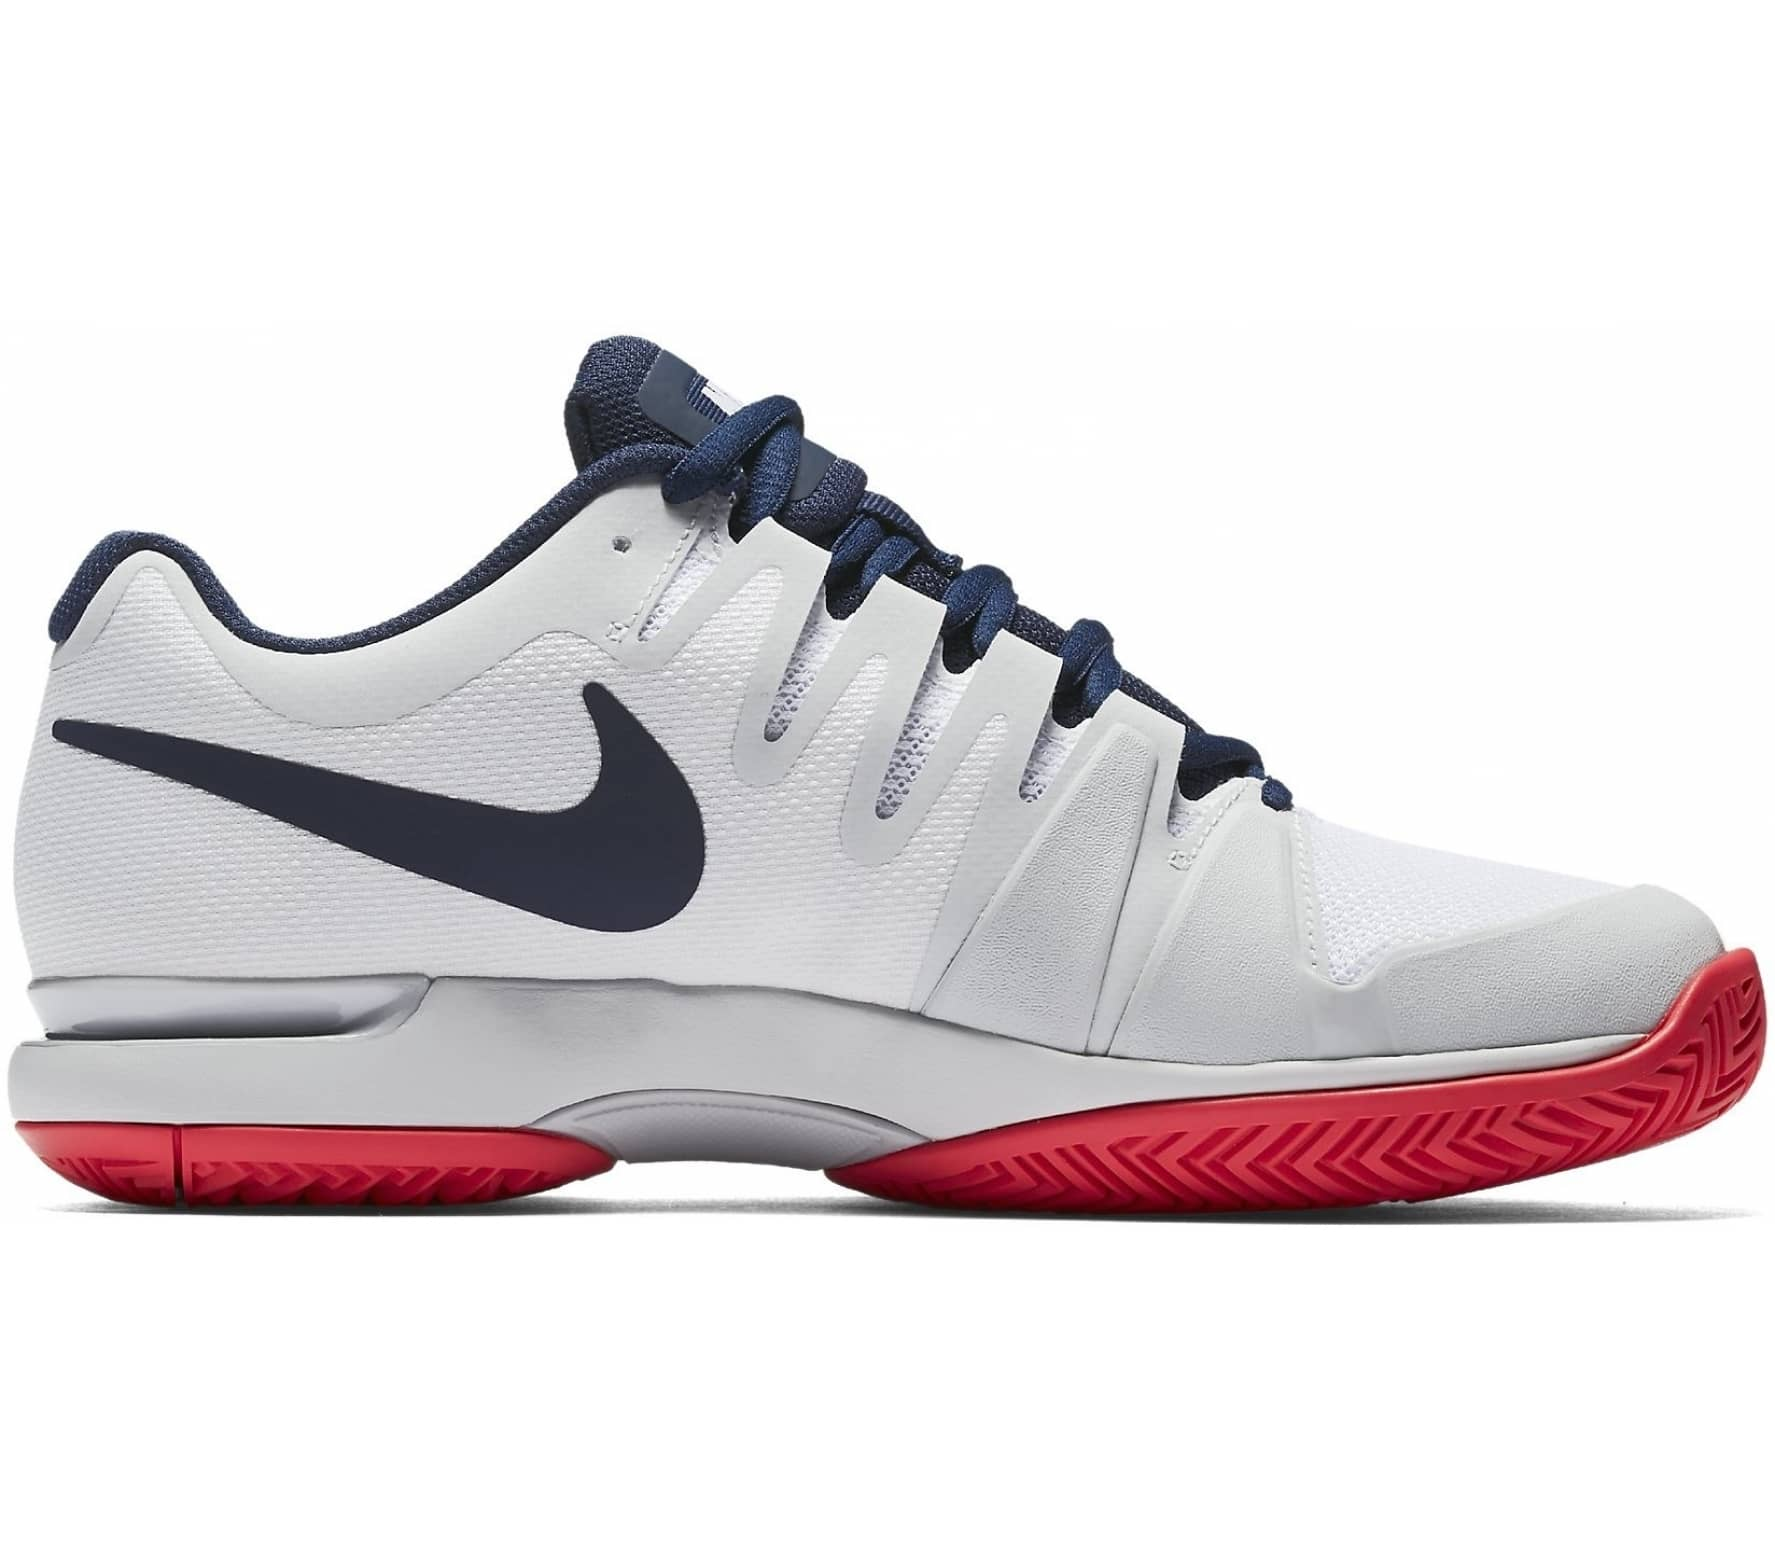 Nike - Air Zoom Vapor 9.5 Tour women s tennis shoes (white dark blue ... 8a6b1b028221